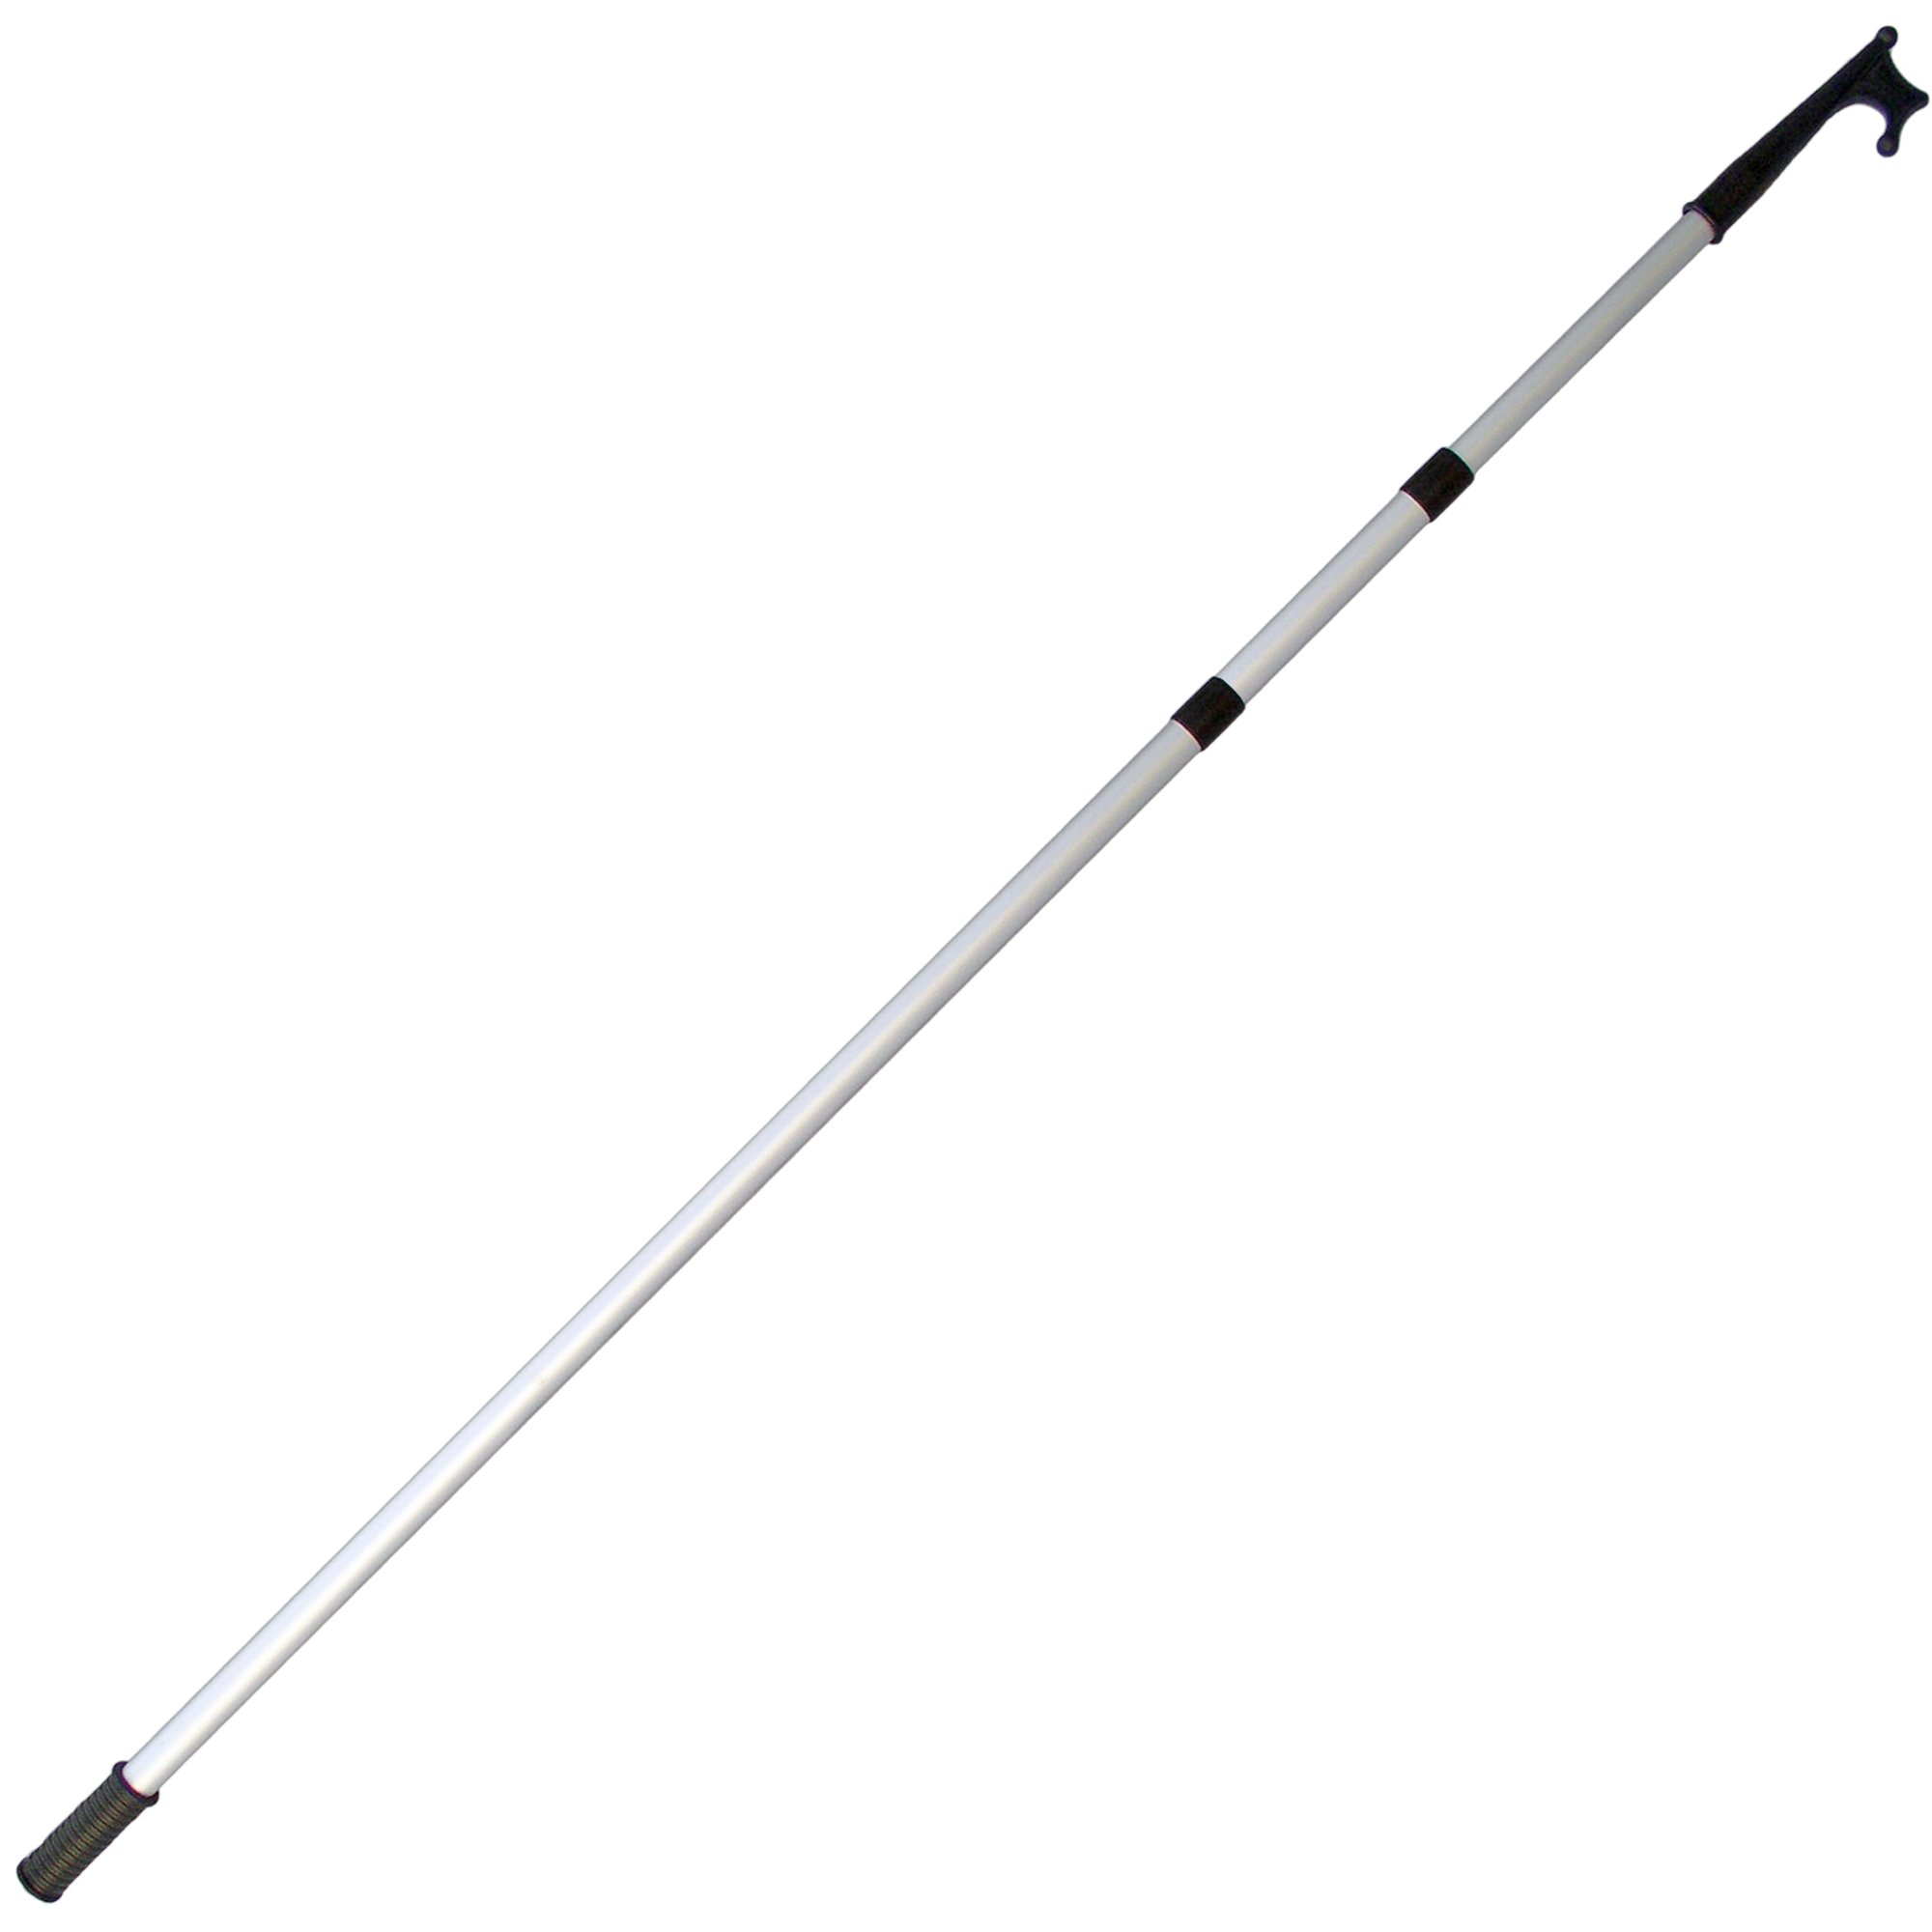 Five Oceans Marine Floating Aluminum Telescopic Hook for Boat/raft 56´´ to 144´´- FO-3466